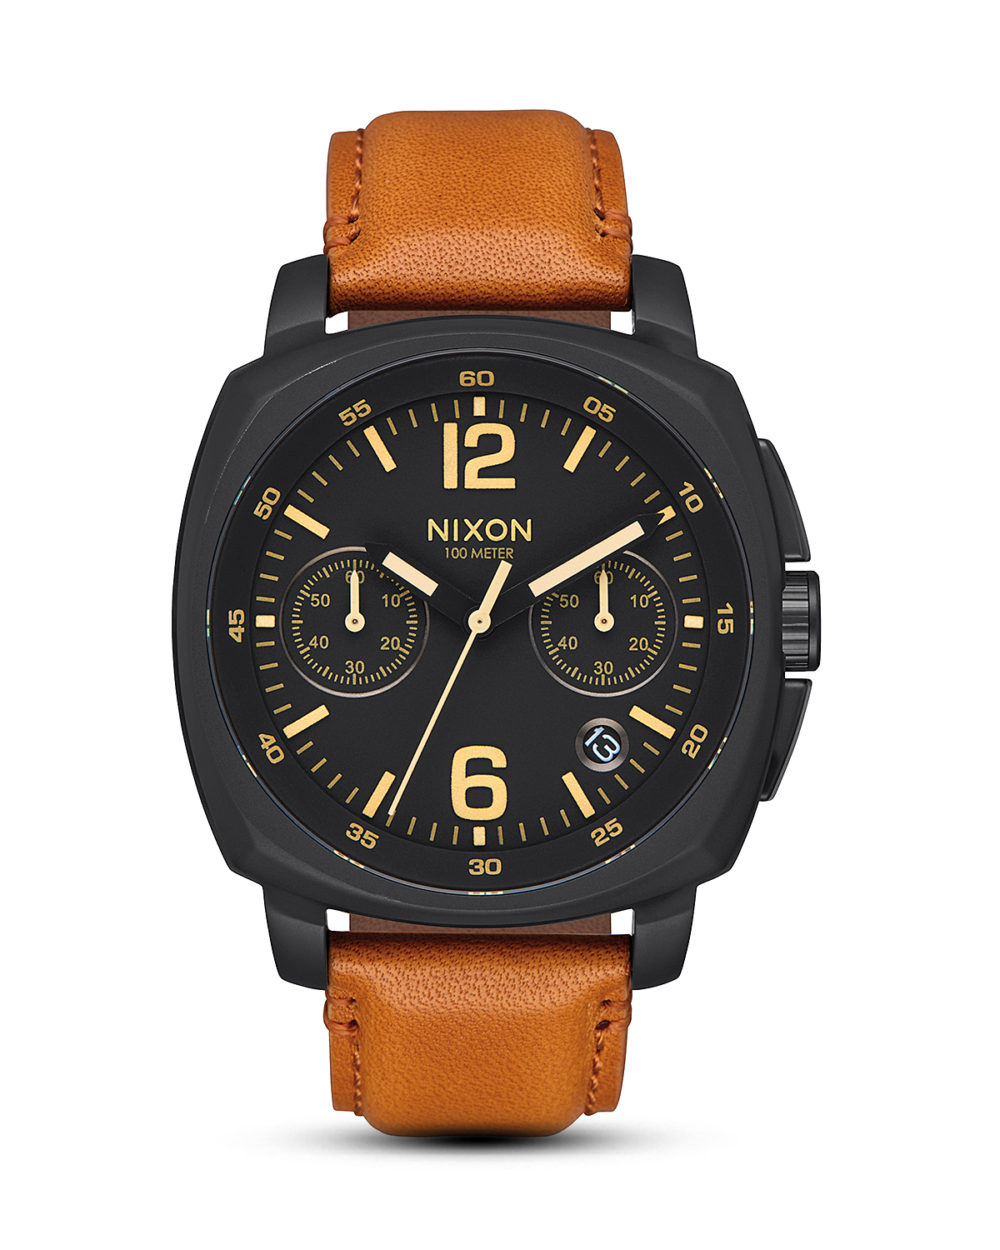 NIXON, Chronograph Charger Leather A1073 2447 00 All Black / Light Brown